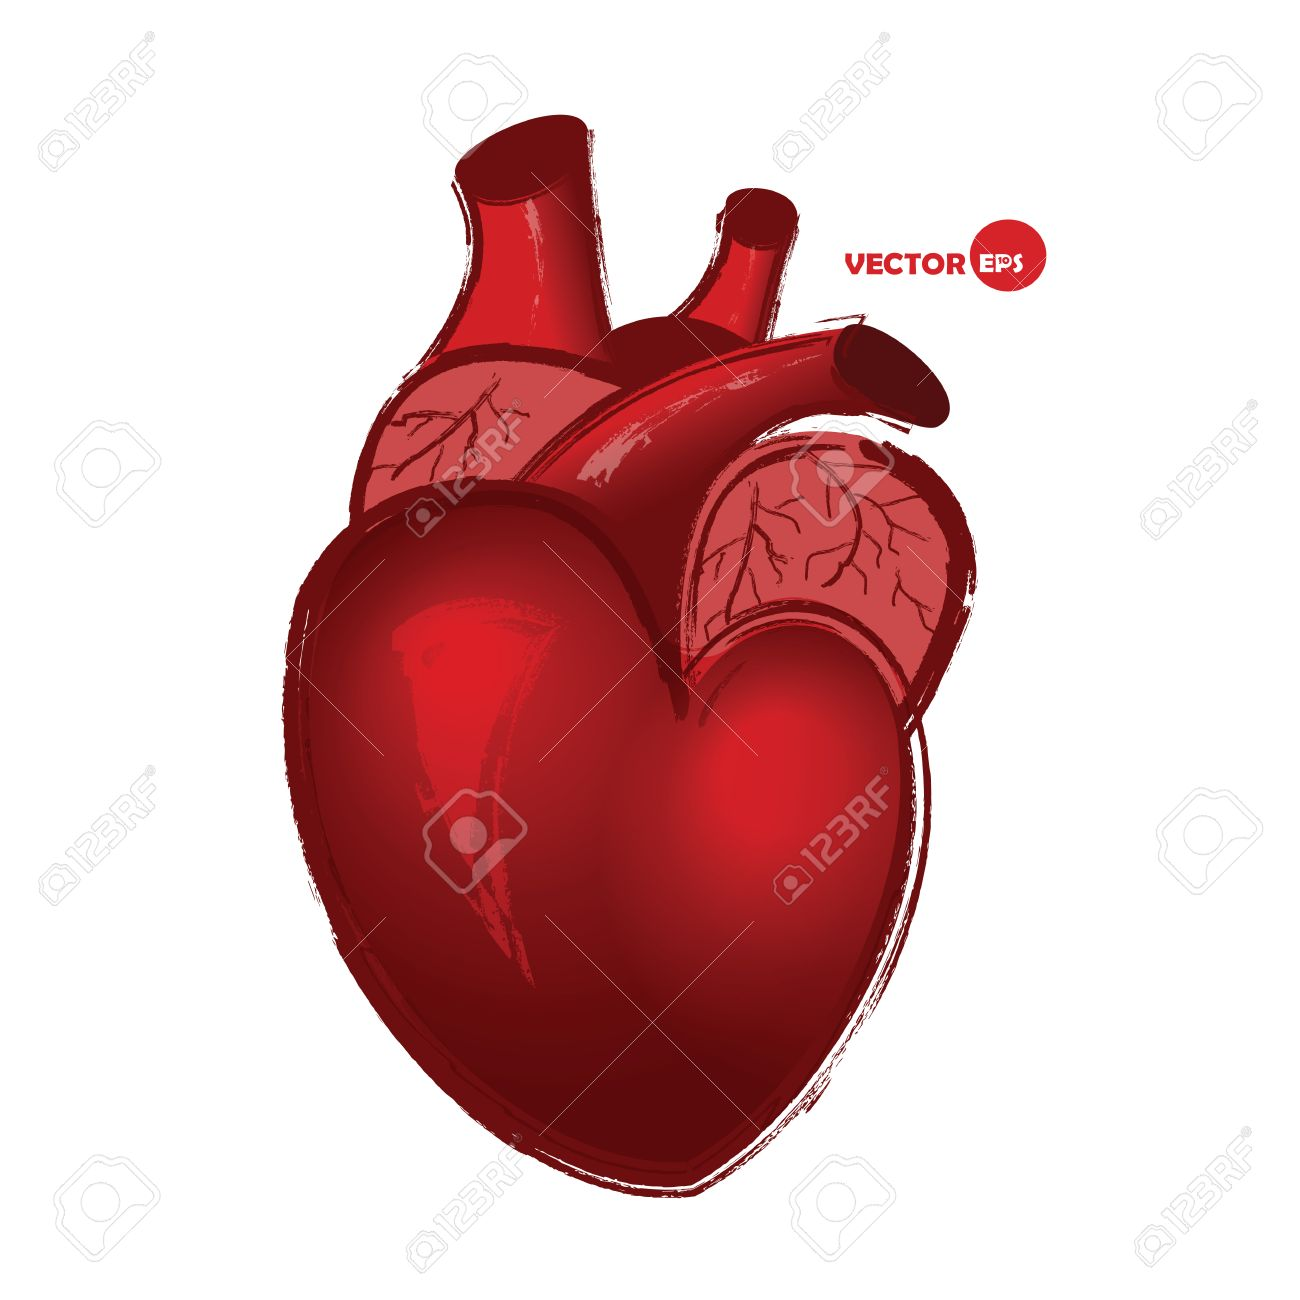 Anatomical human heart on white background, drawing in cartoon